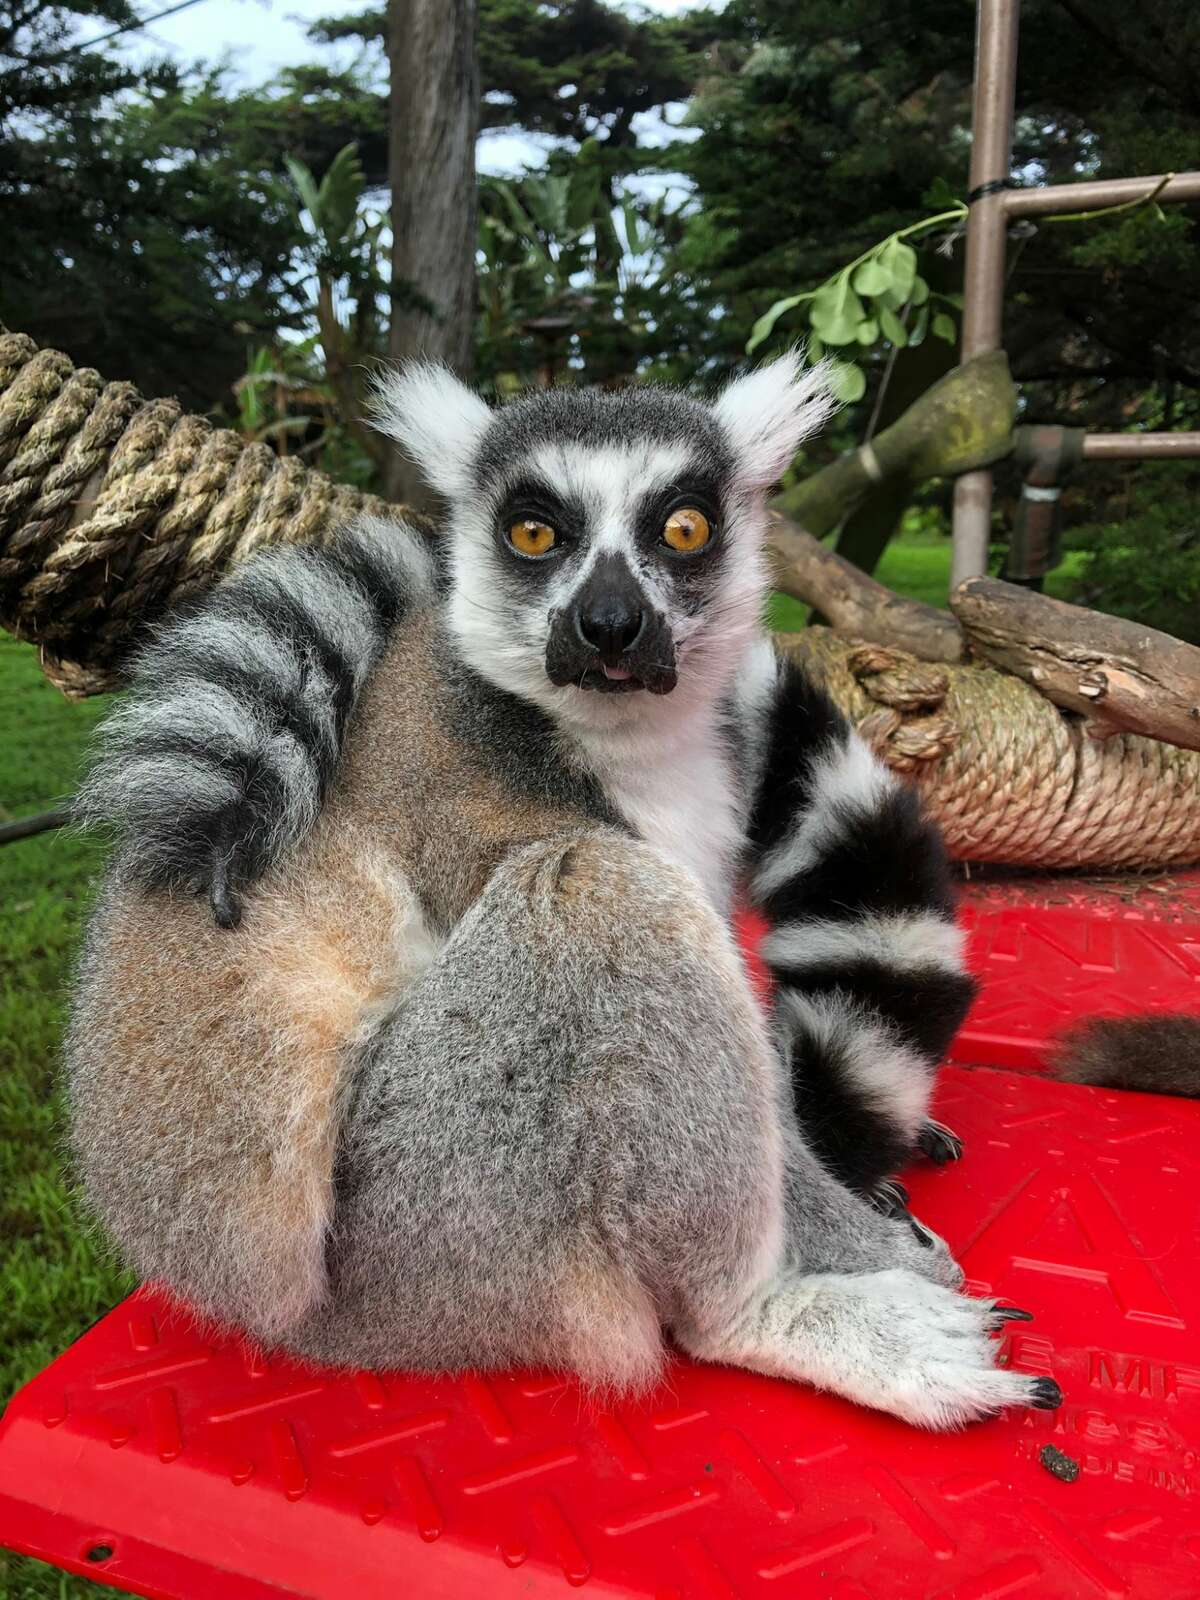 A photo of Maki, a lemur stolen from the San Francisco Zoo and Gardens last year.